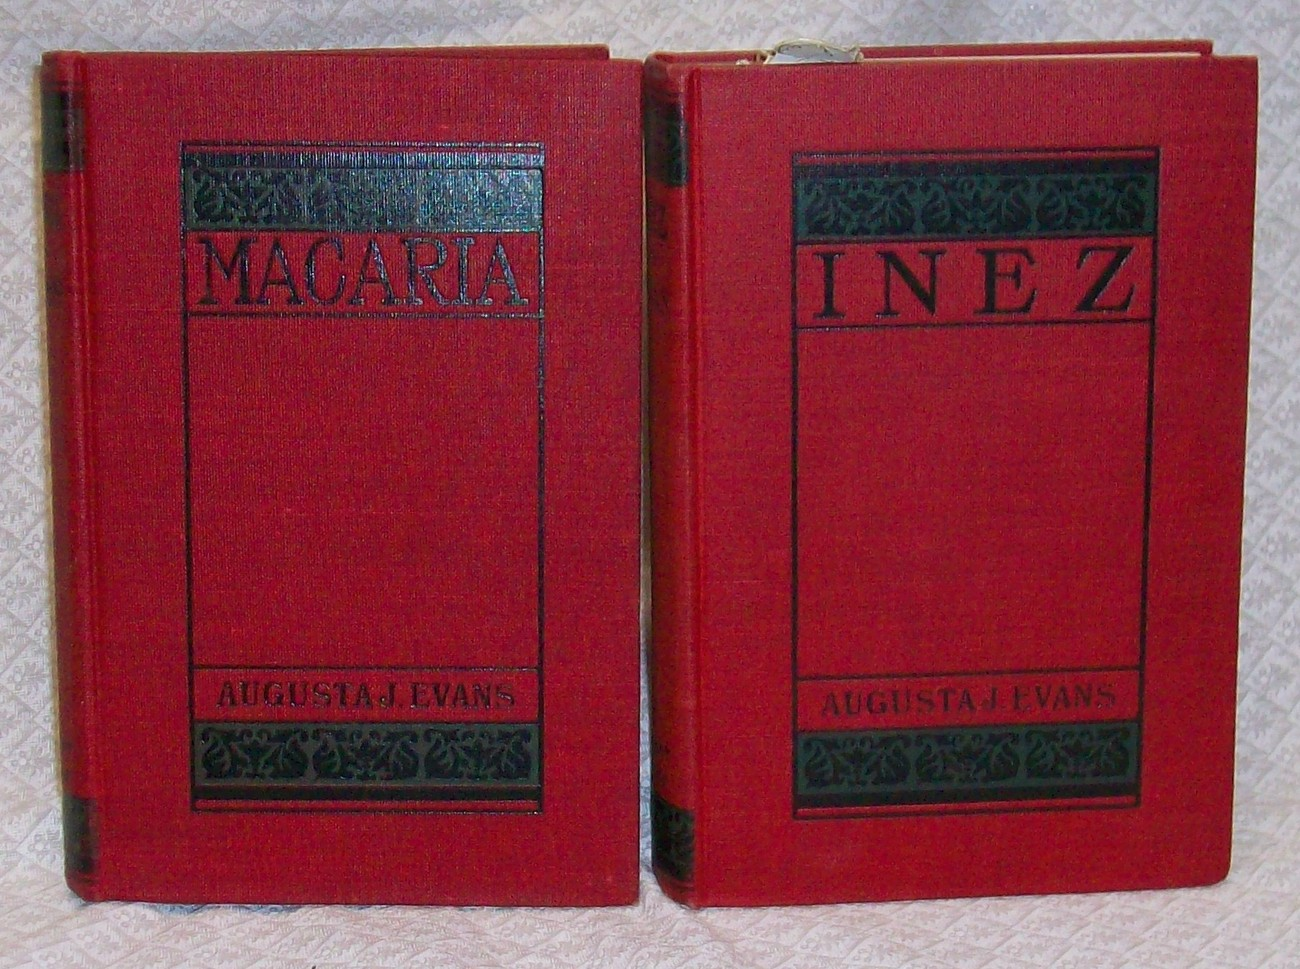 Macaria & Inez by Evans, Augusta 2 titles